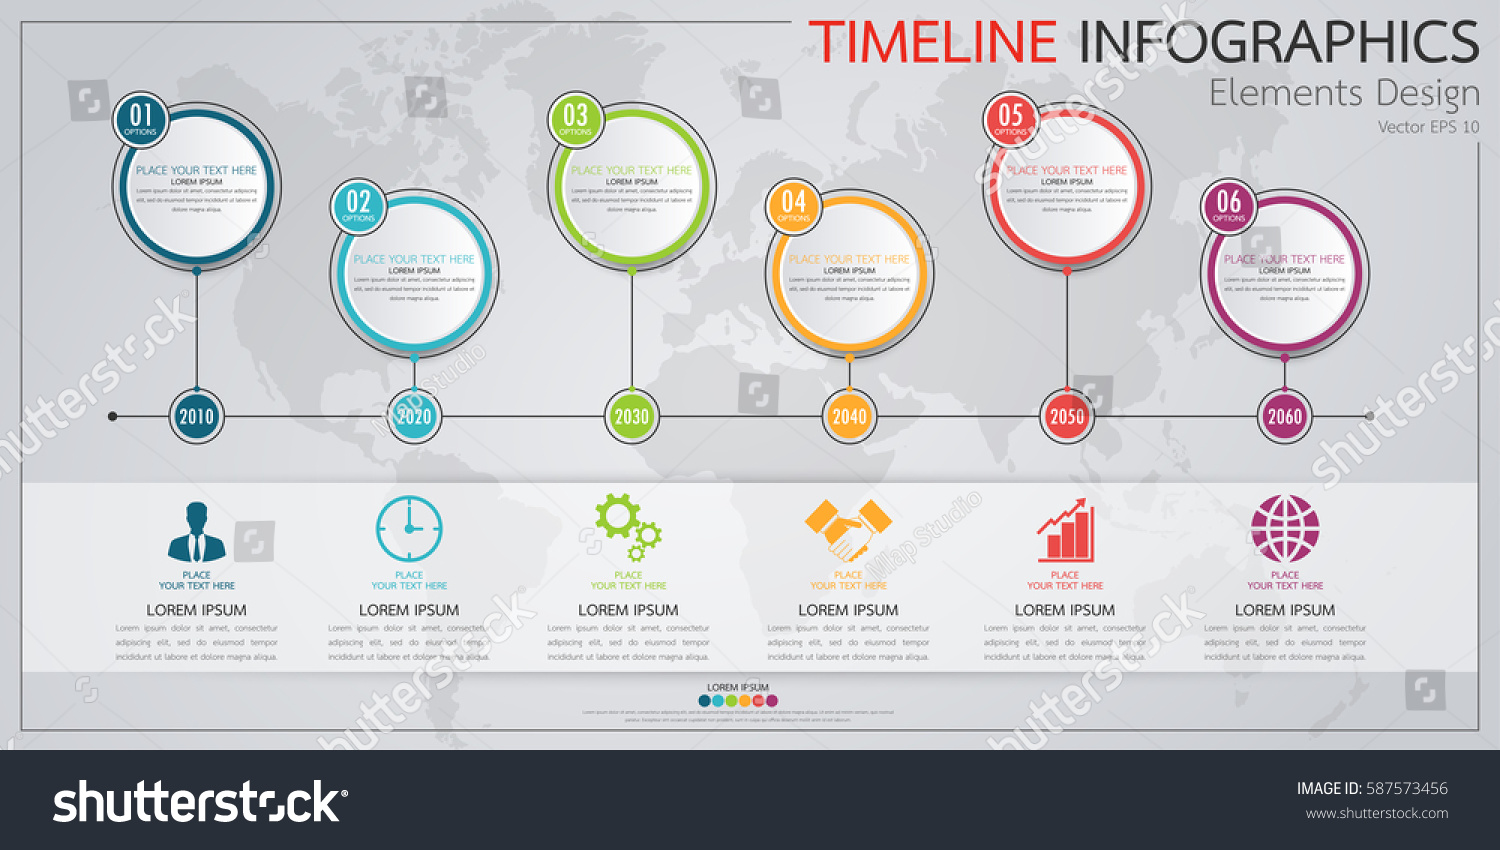 Timeline infographics templates